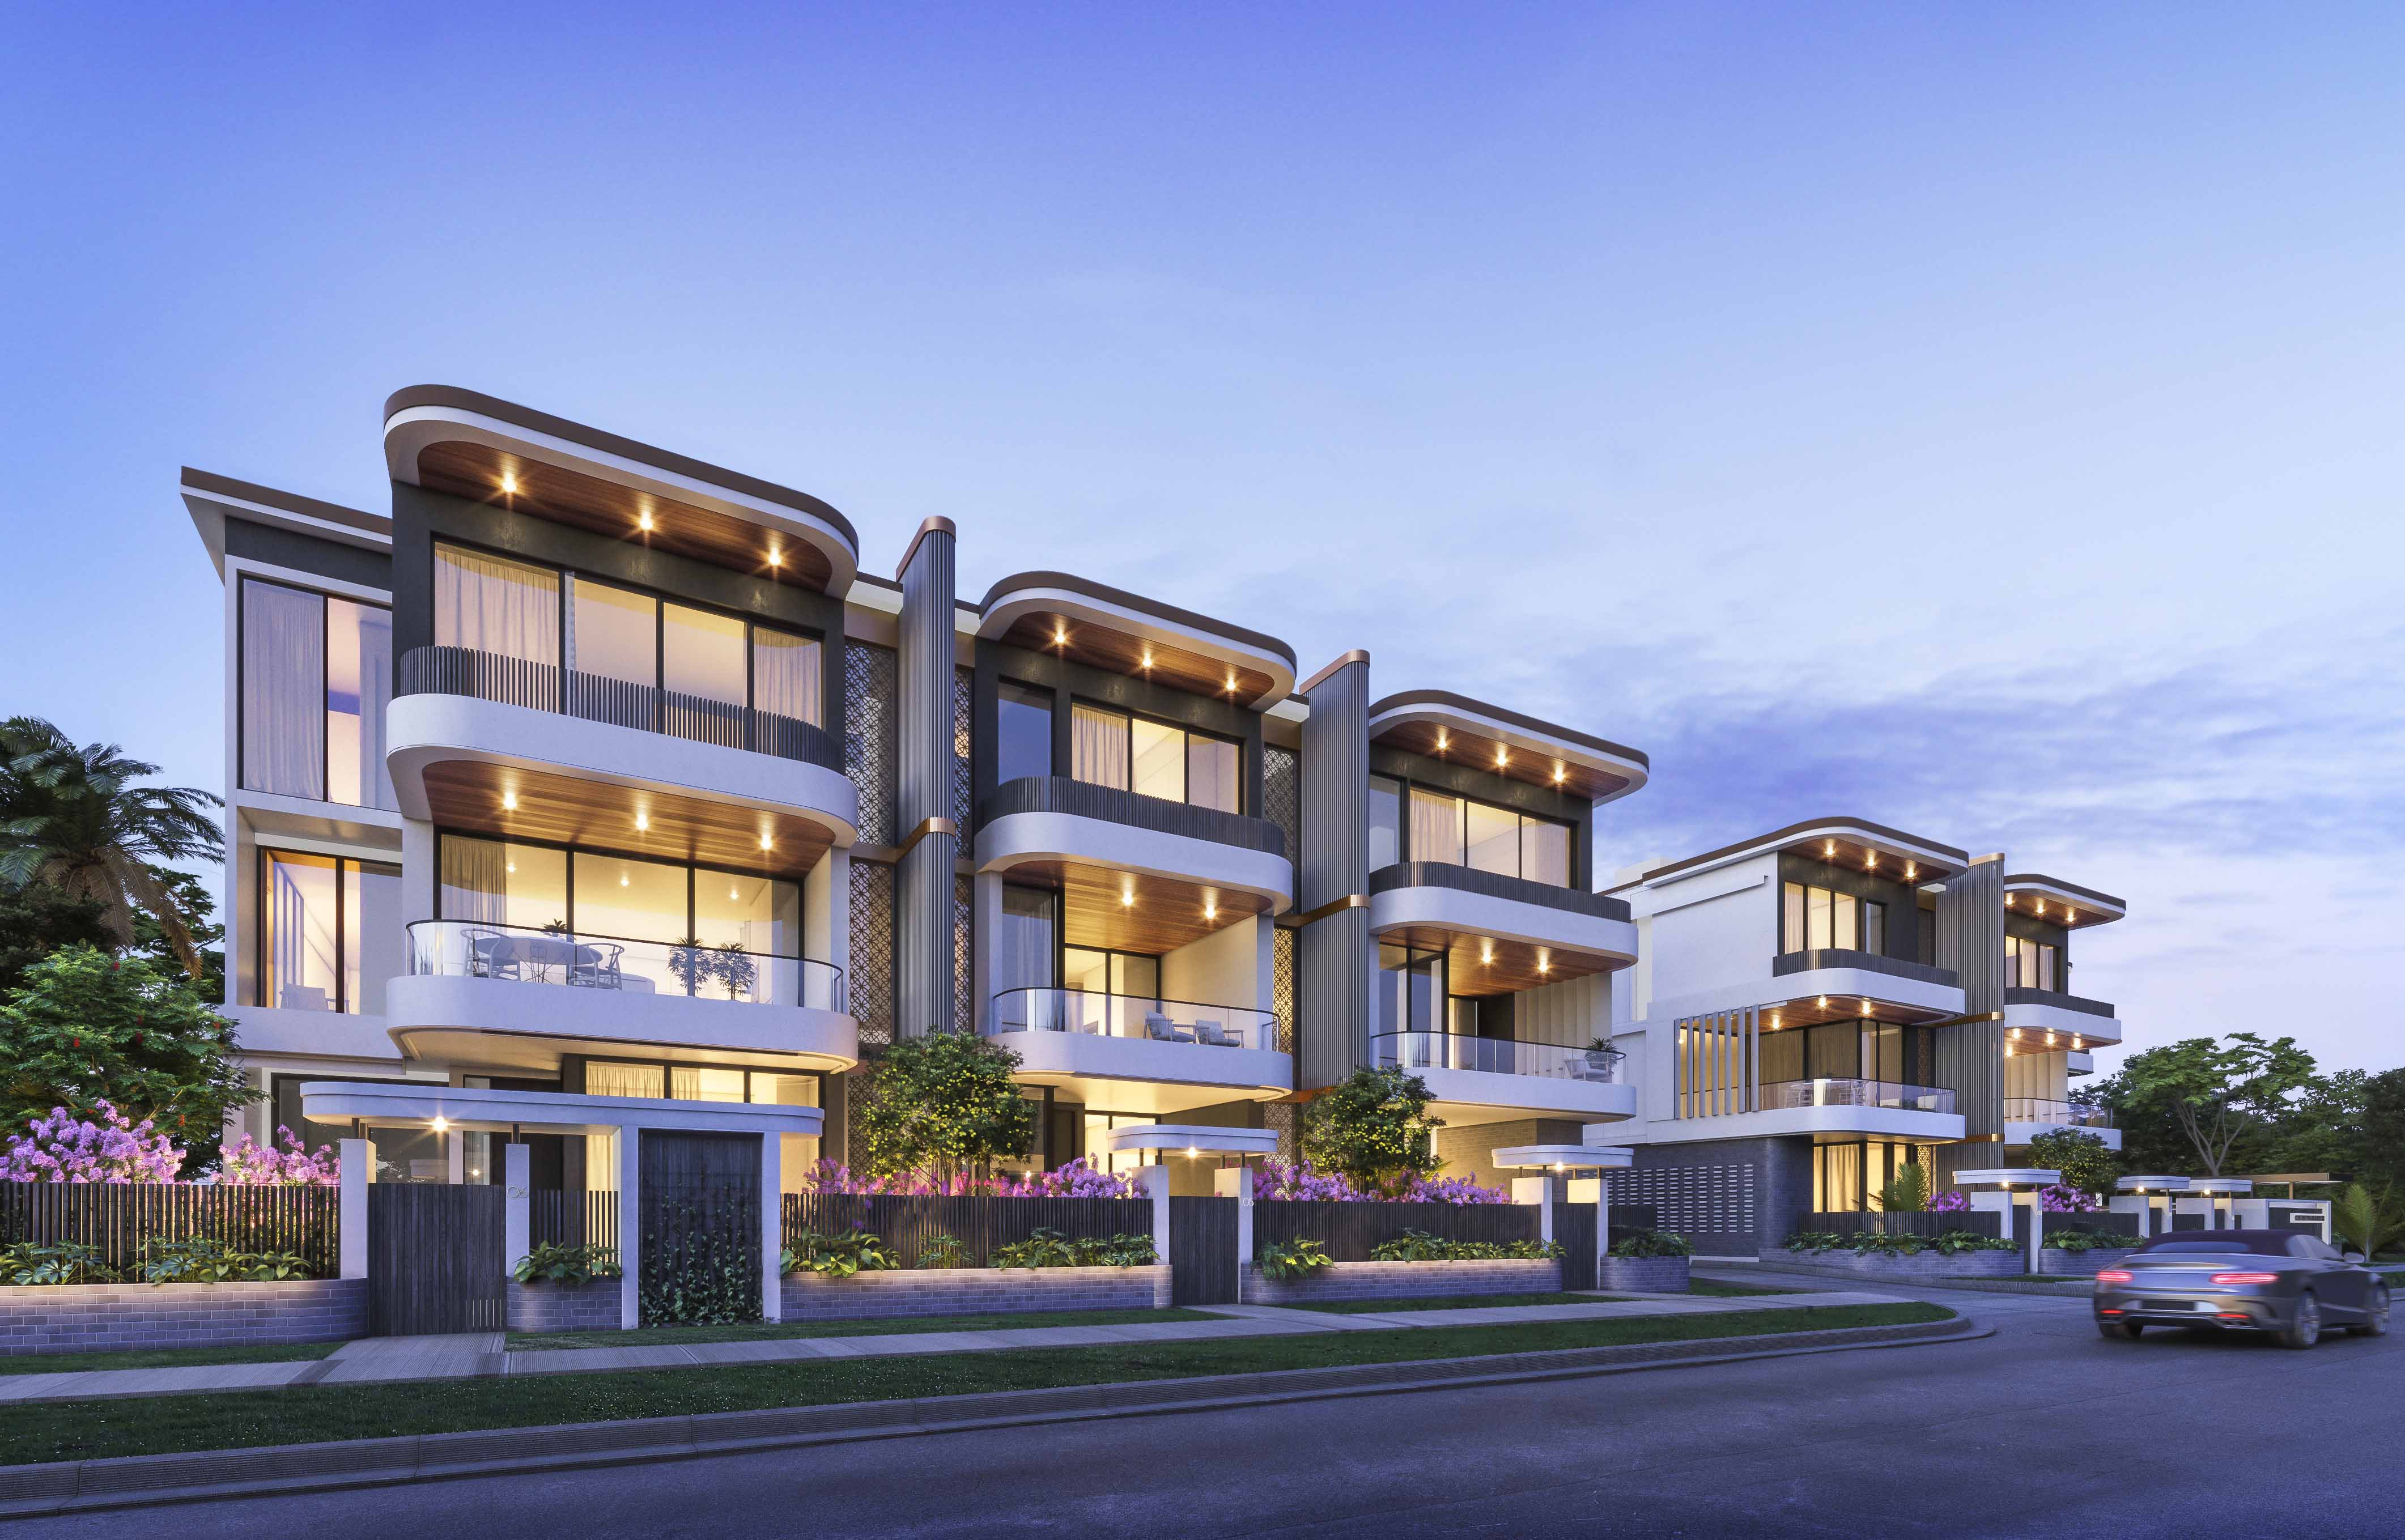 ONE-Bulimba-Riverfront-Town-Homes-Byron-St-crped-same-size-river-lo-res